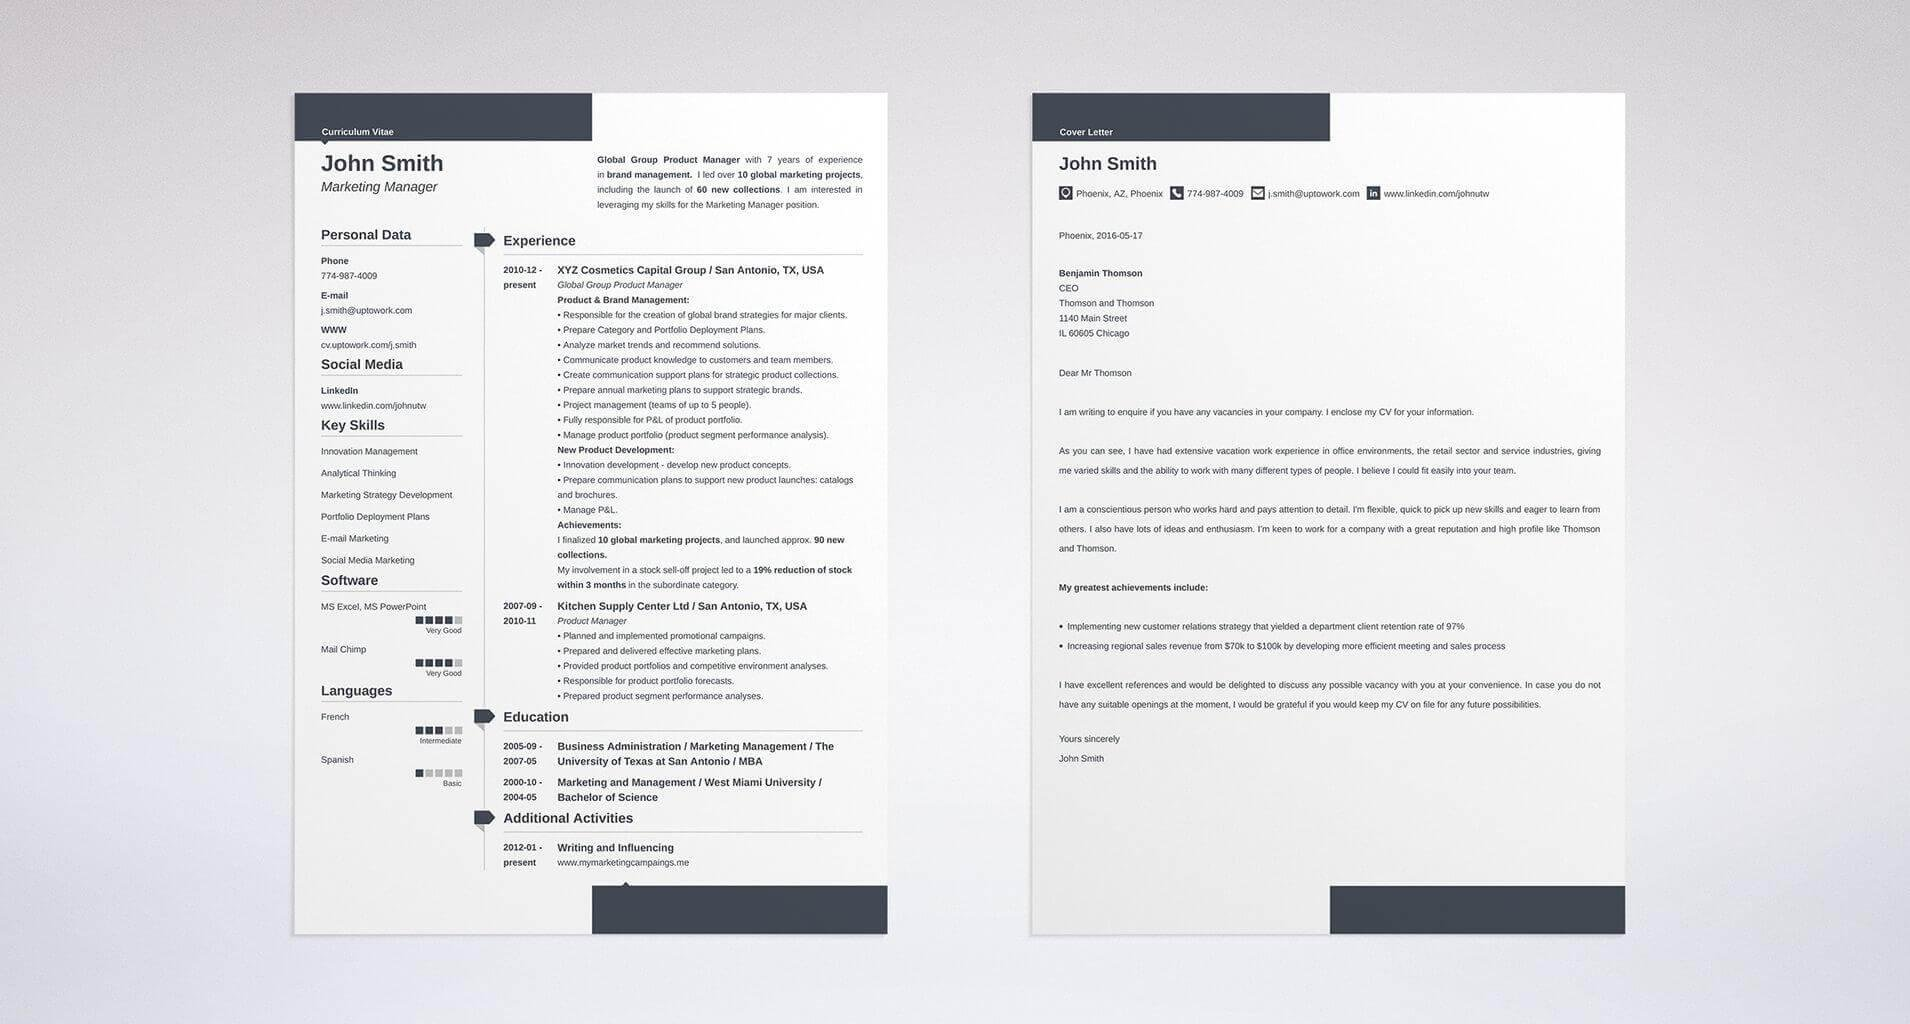 licenses certifications on resume sample easy tips to put cover letter and template Resume Where To Put Certifications On Resume